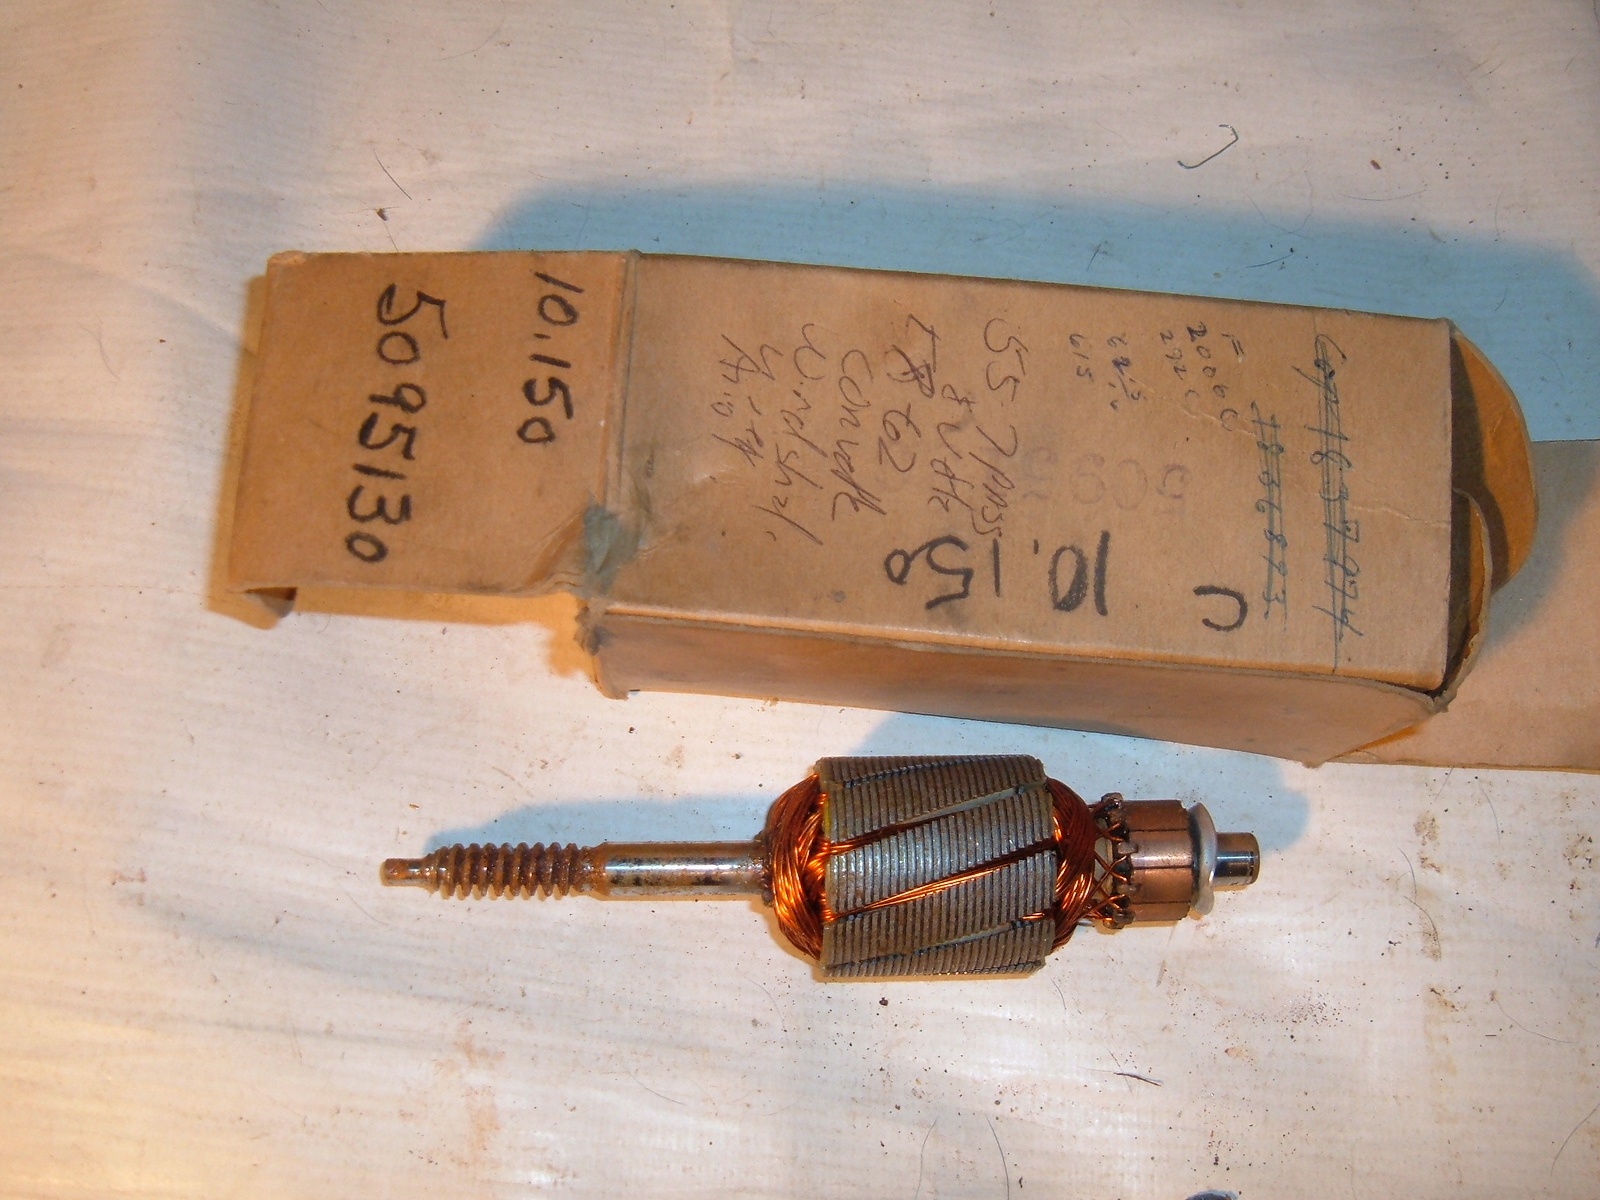 1955 56 57 58 59 60 61 62 corvette pass windshield wiper motor nos gm 5095130 (z 5095130)